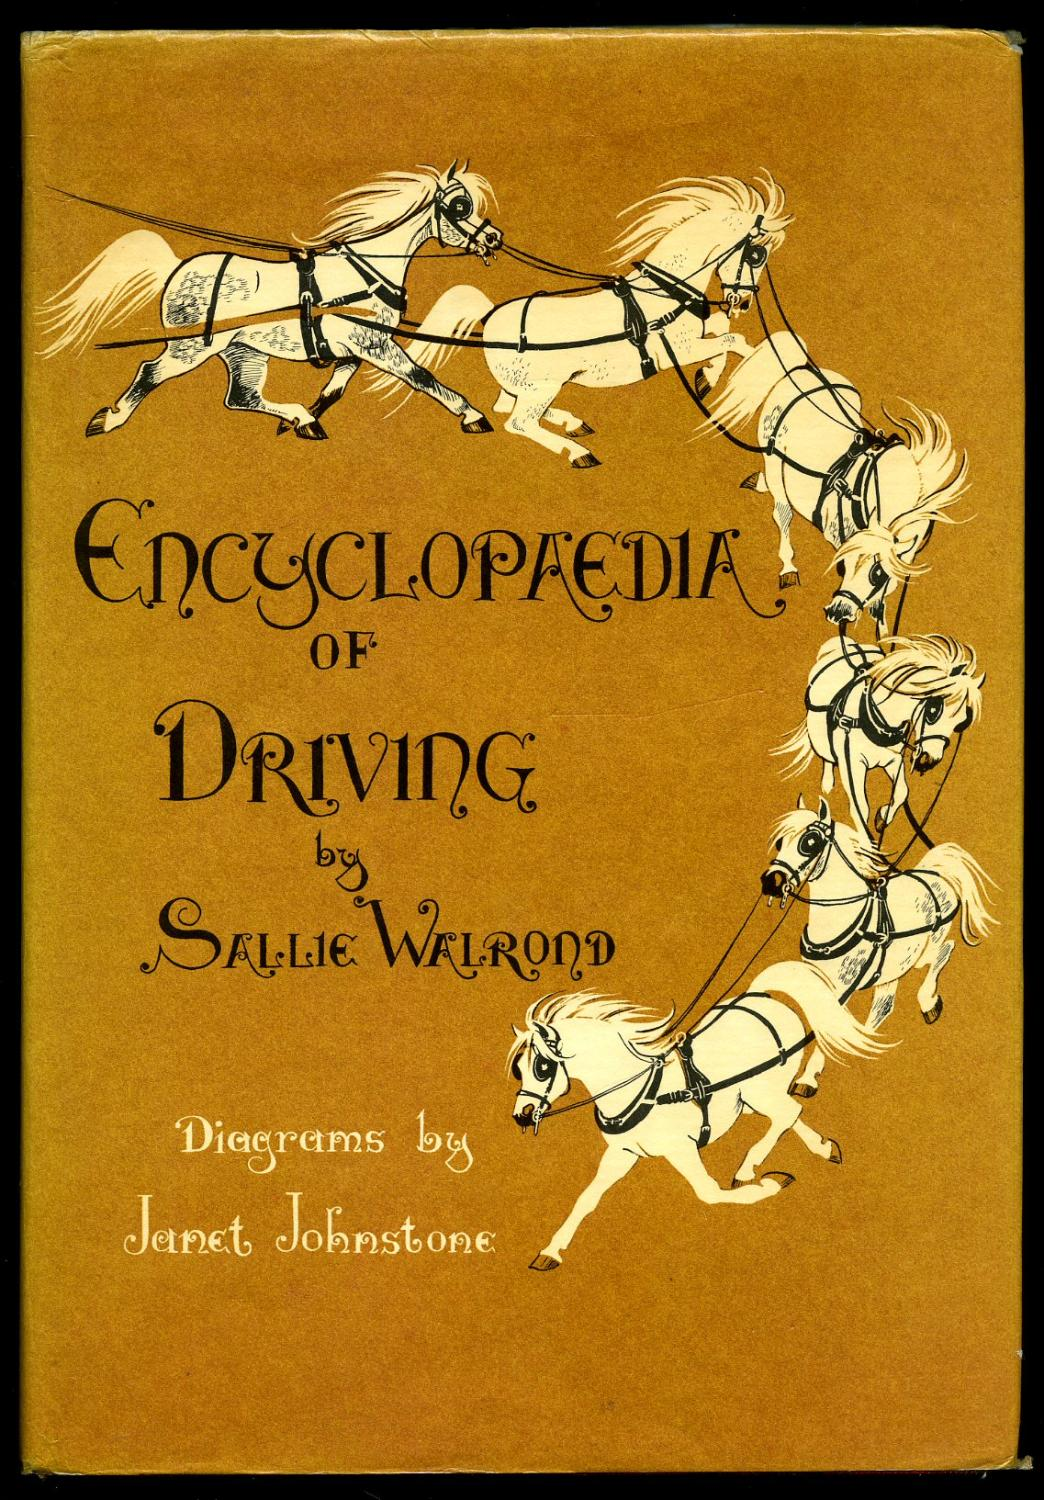 Janet Grahame Johnstone Sallie Walrond Encyclopaedia of Driving